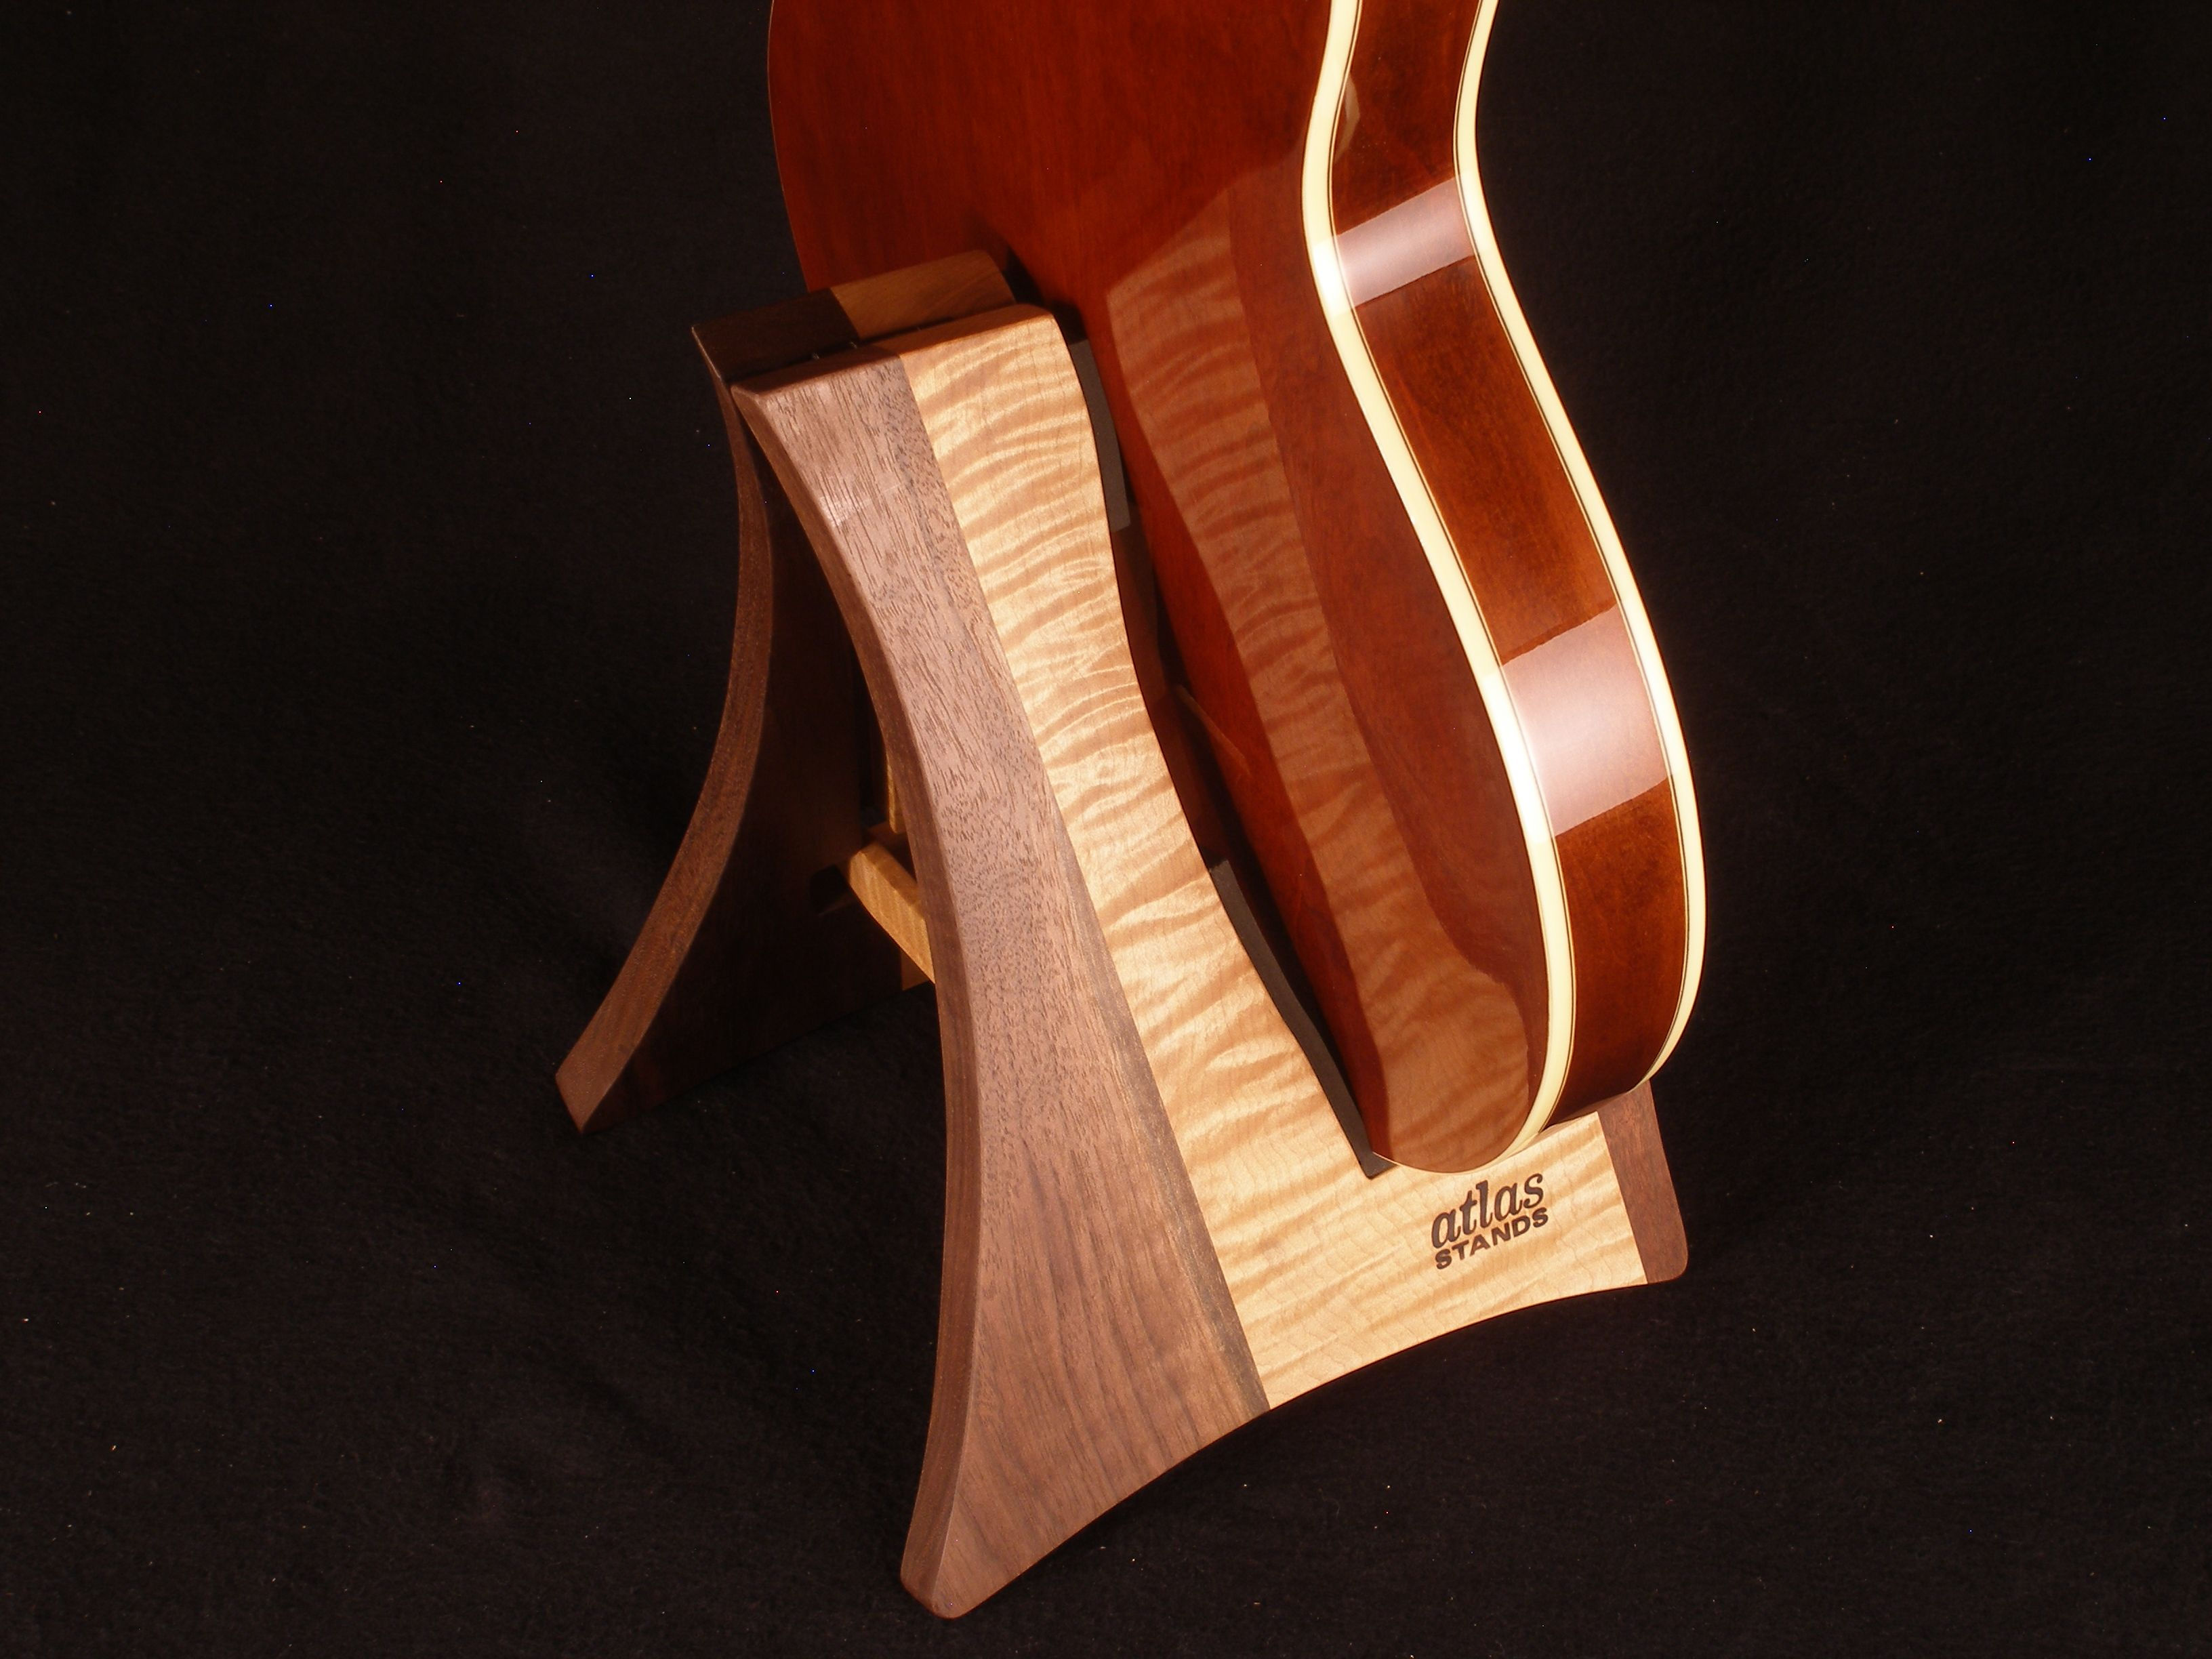 curly maple and black walnut guitar stand it folds up too custom atlas stands guitar stands. Black Bedroom Furniture Sets. Home Design Ideas